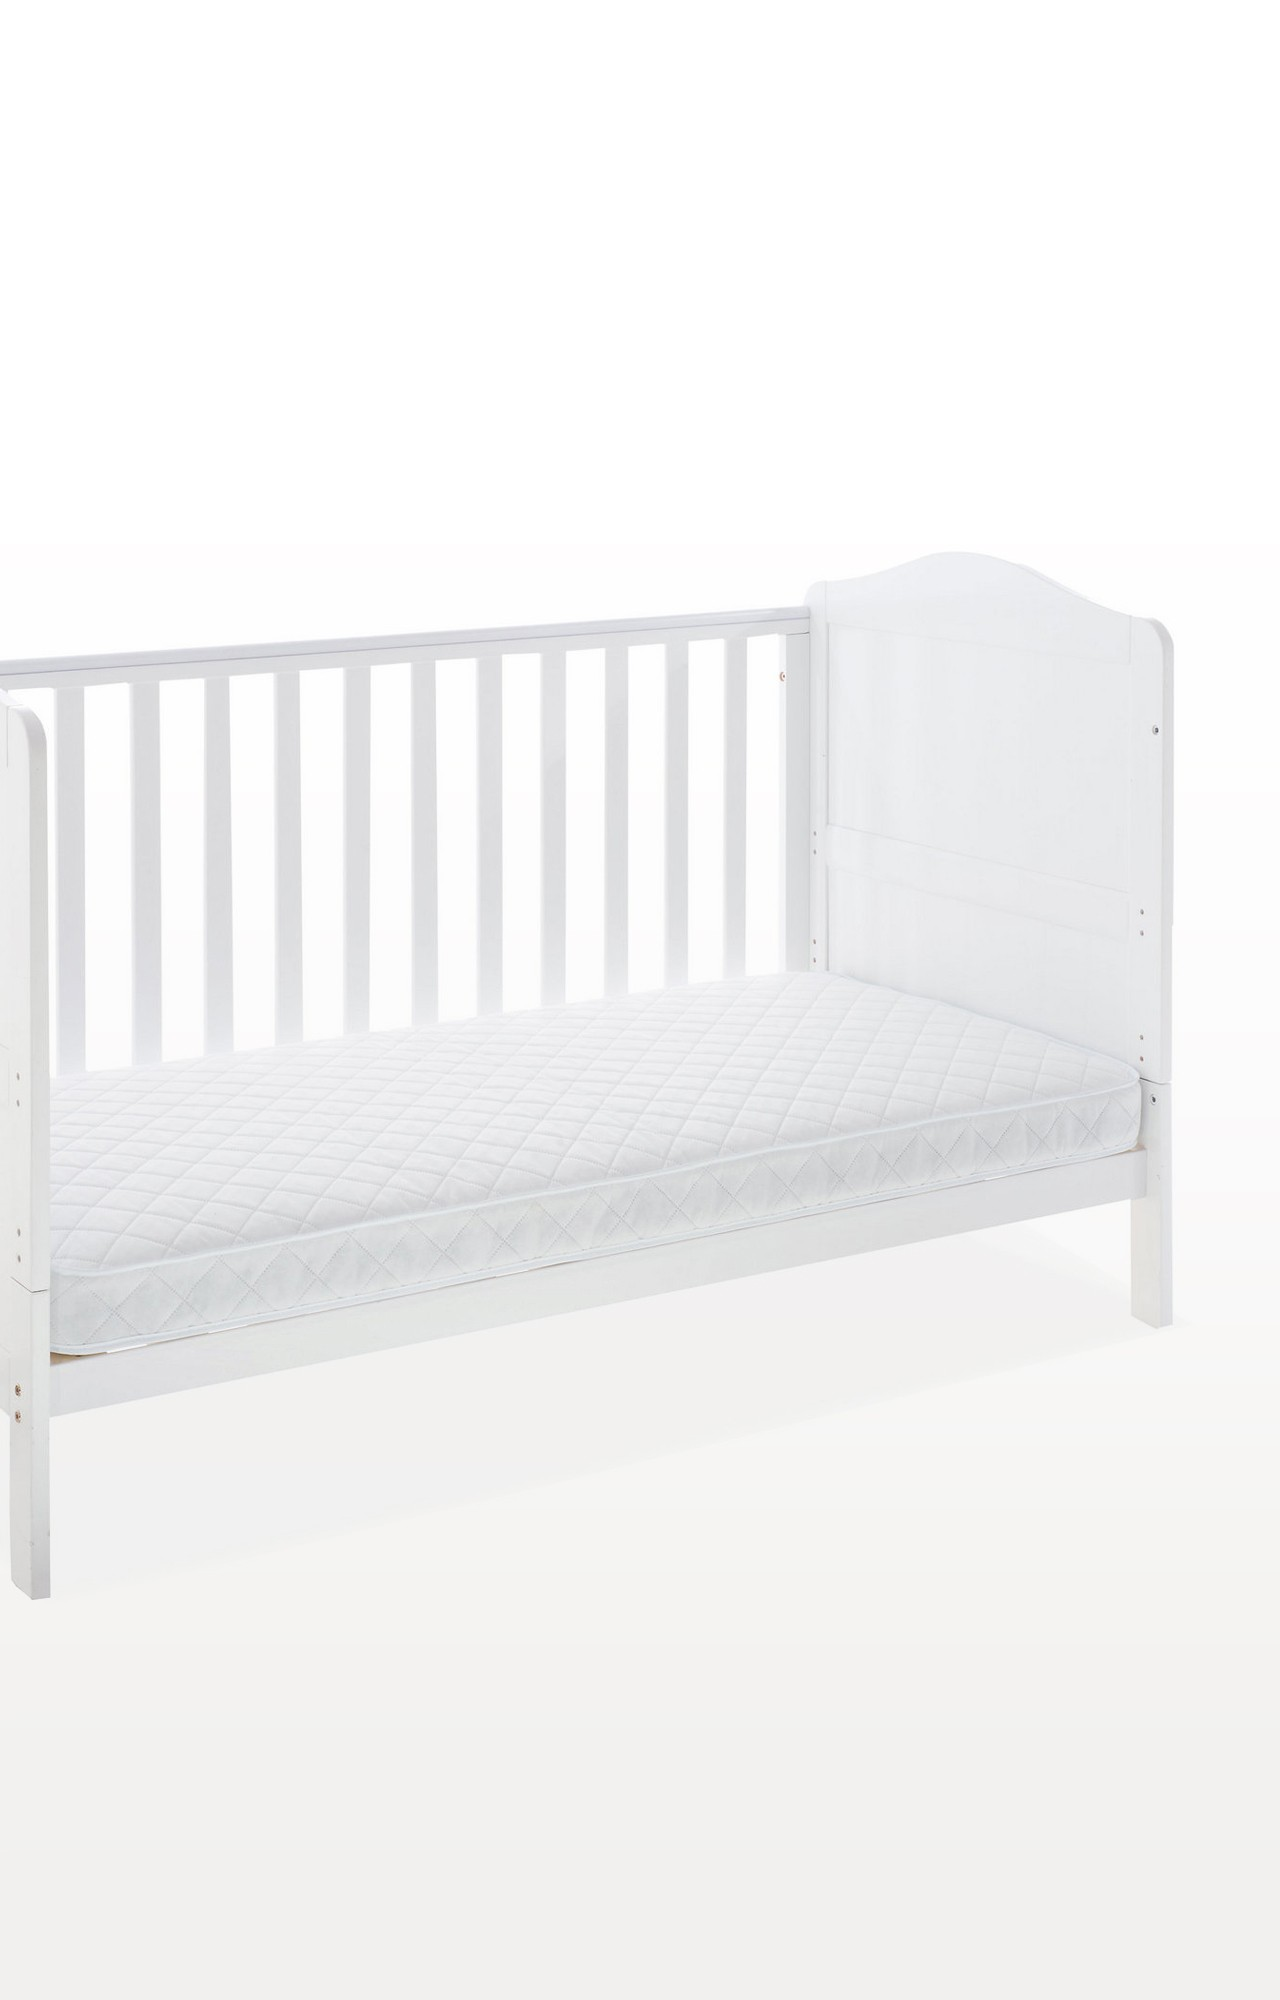 Mothercare | Mothercare Essential Spring Interior Cot Bed Mattress White